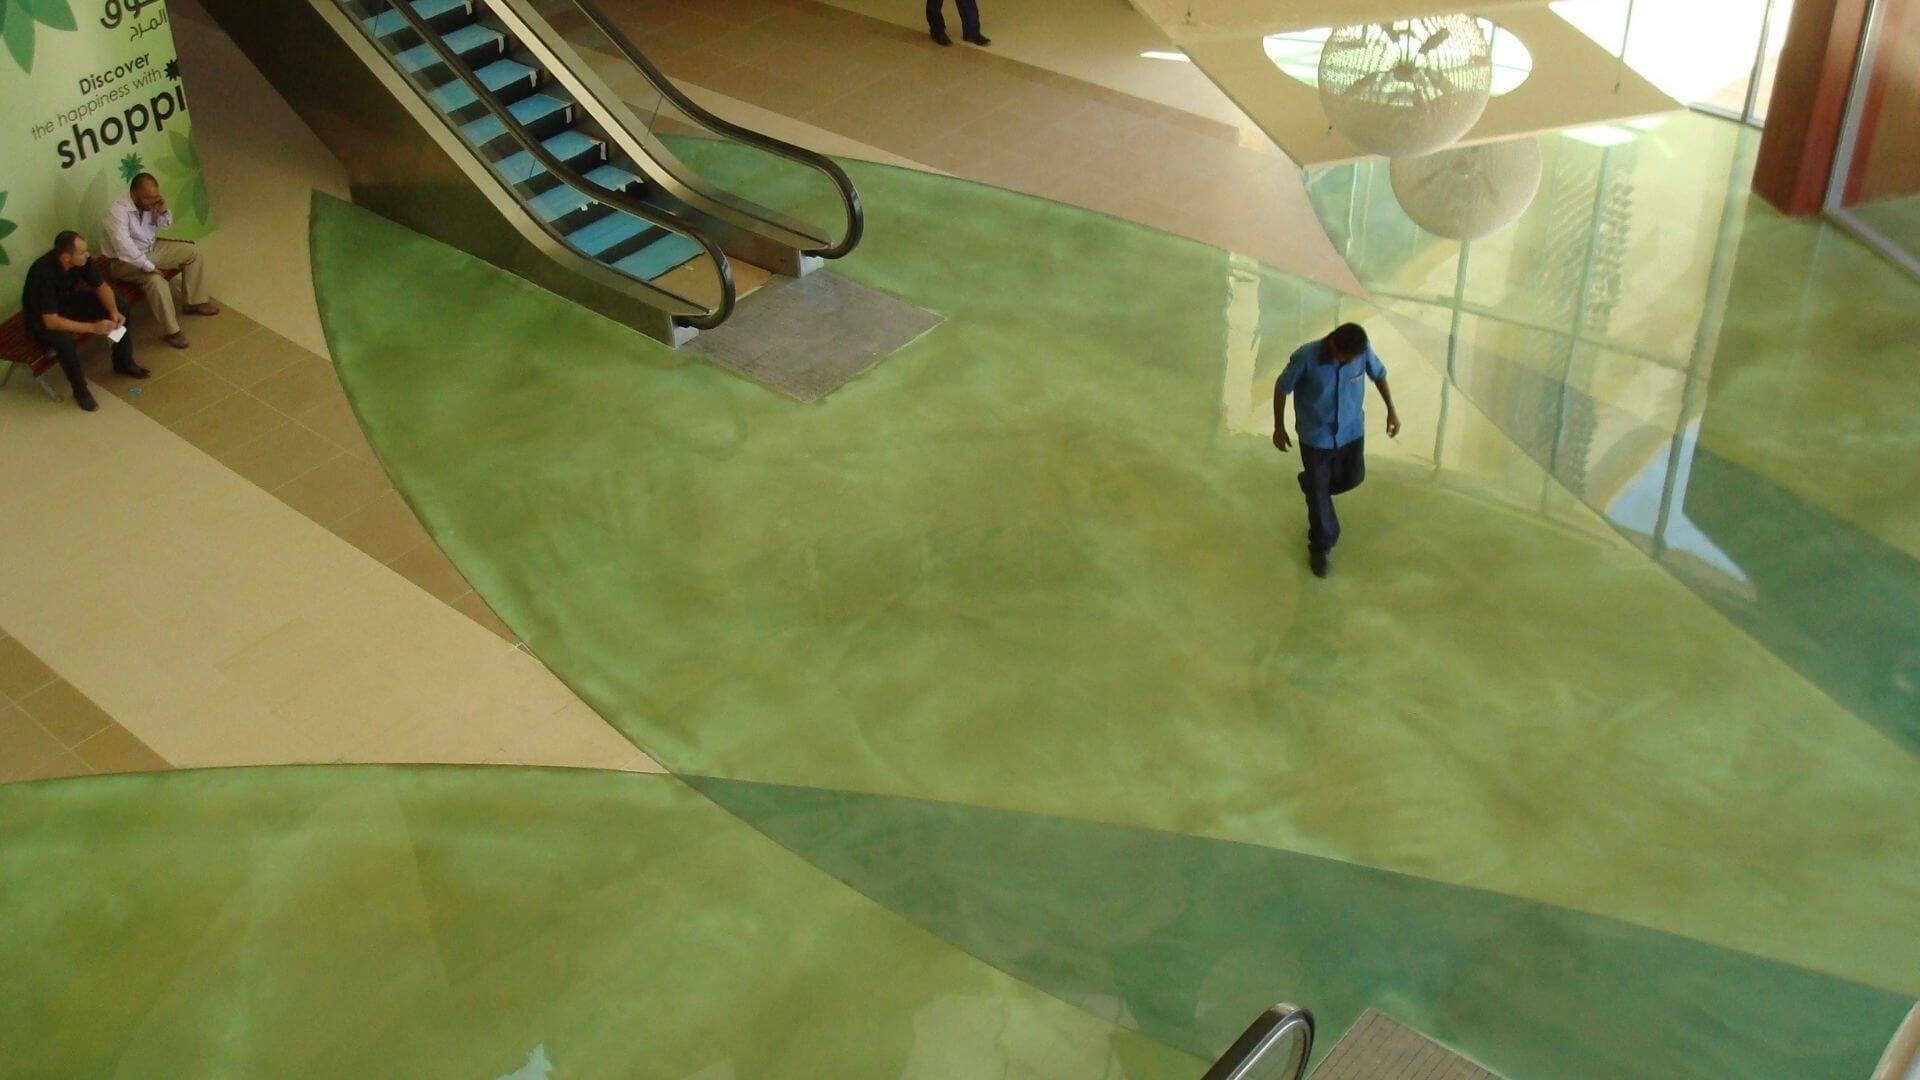 Epoxy Flooring In Shopping Centre